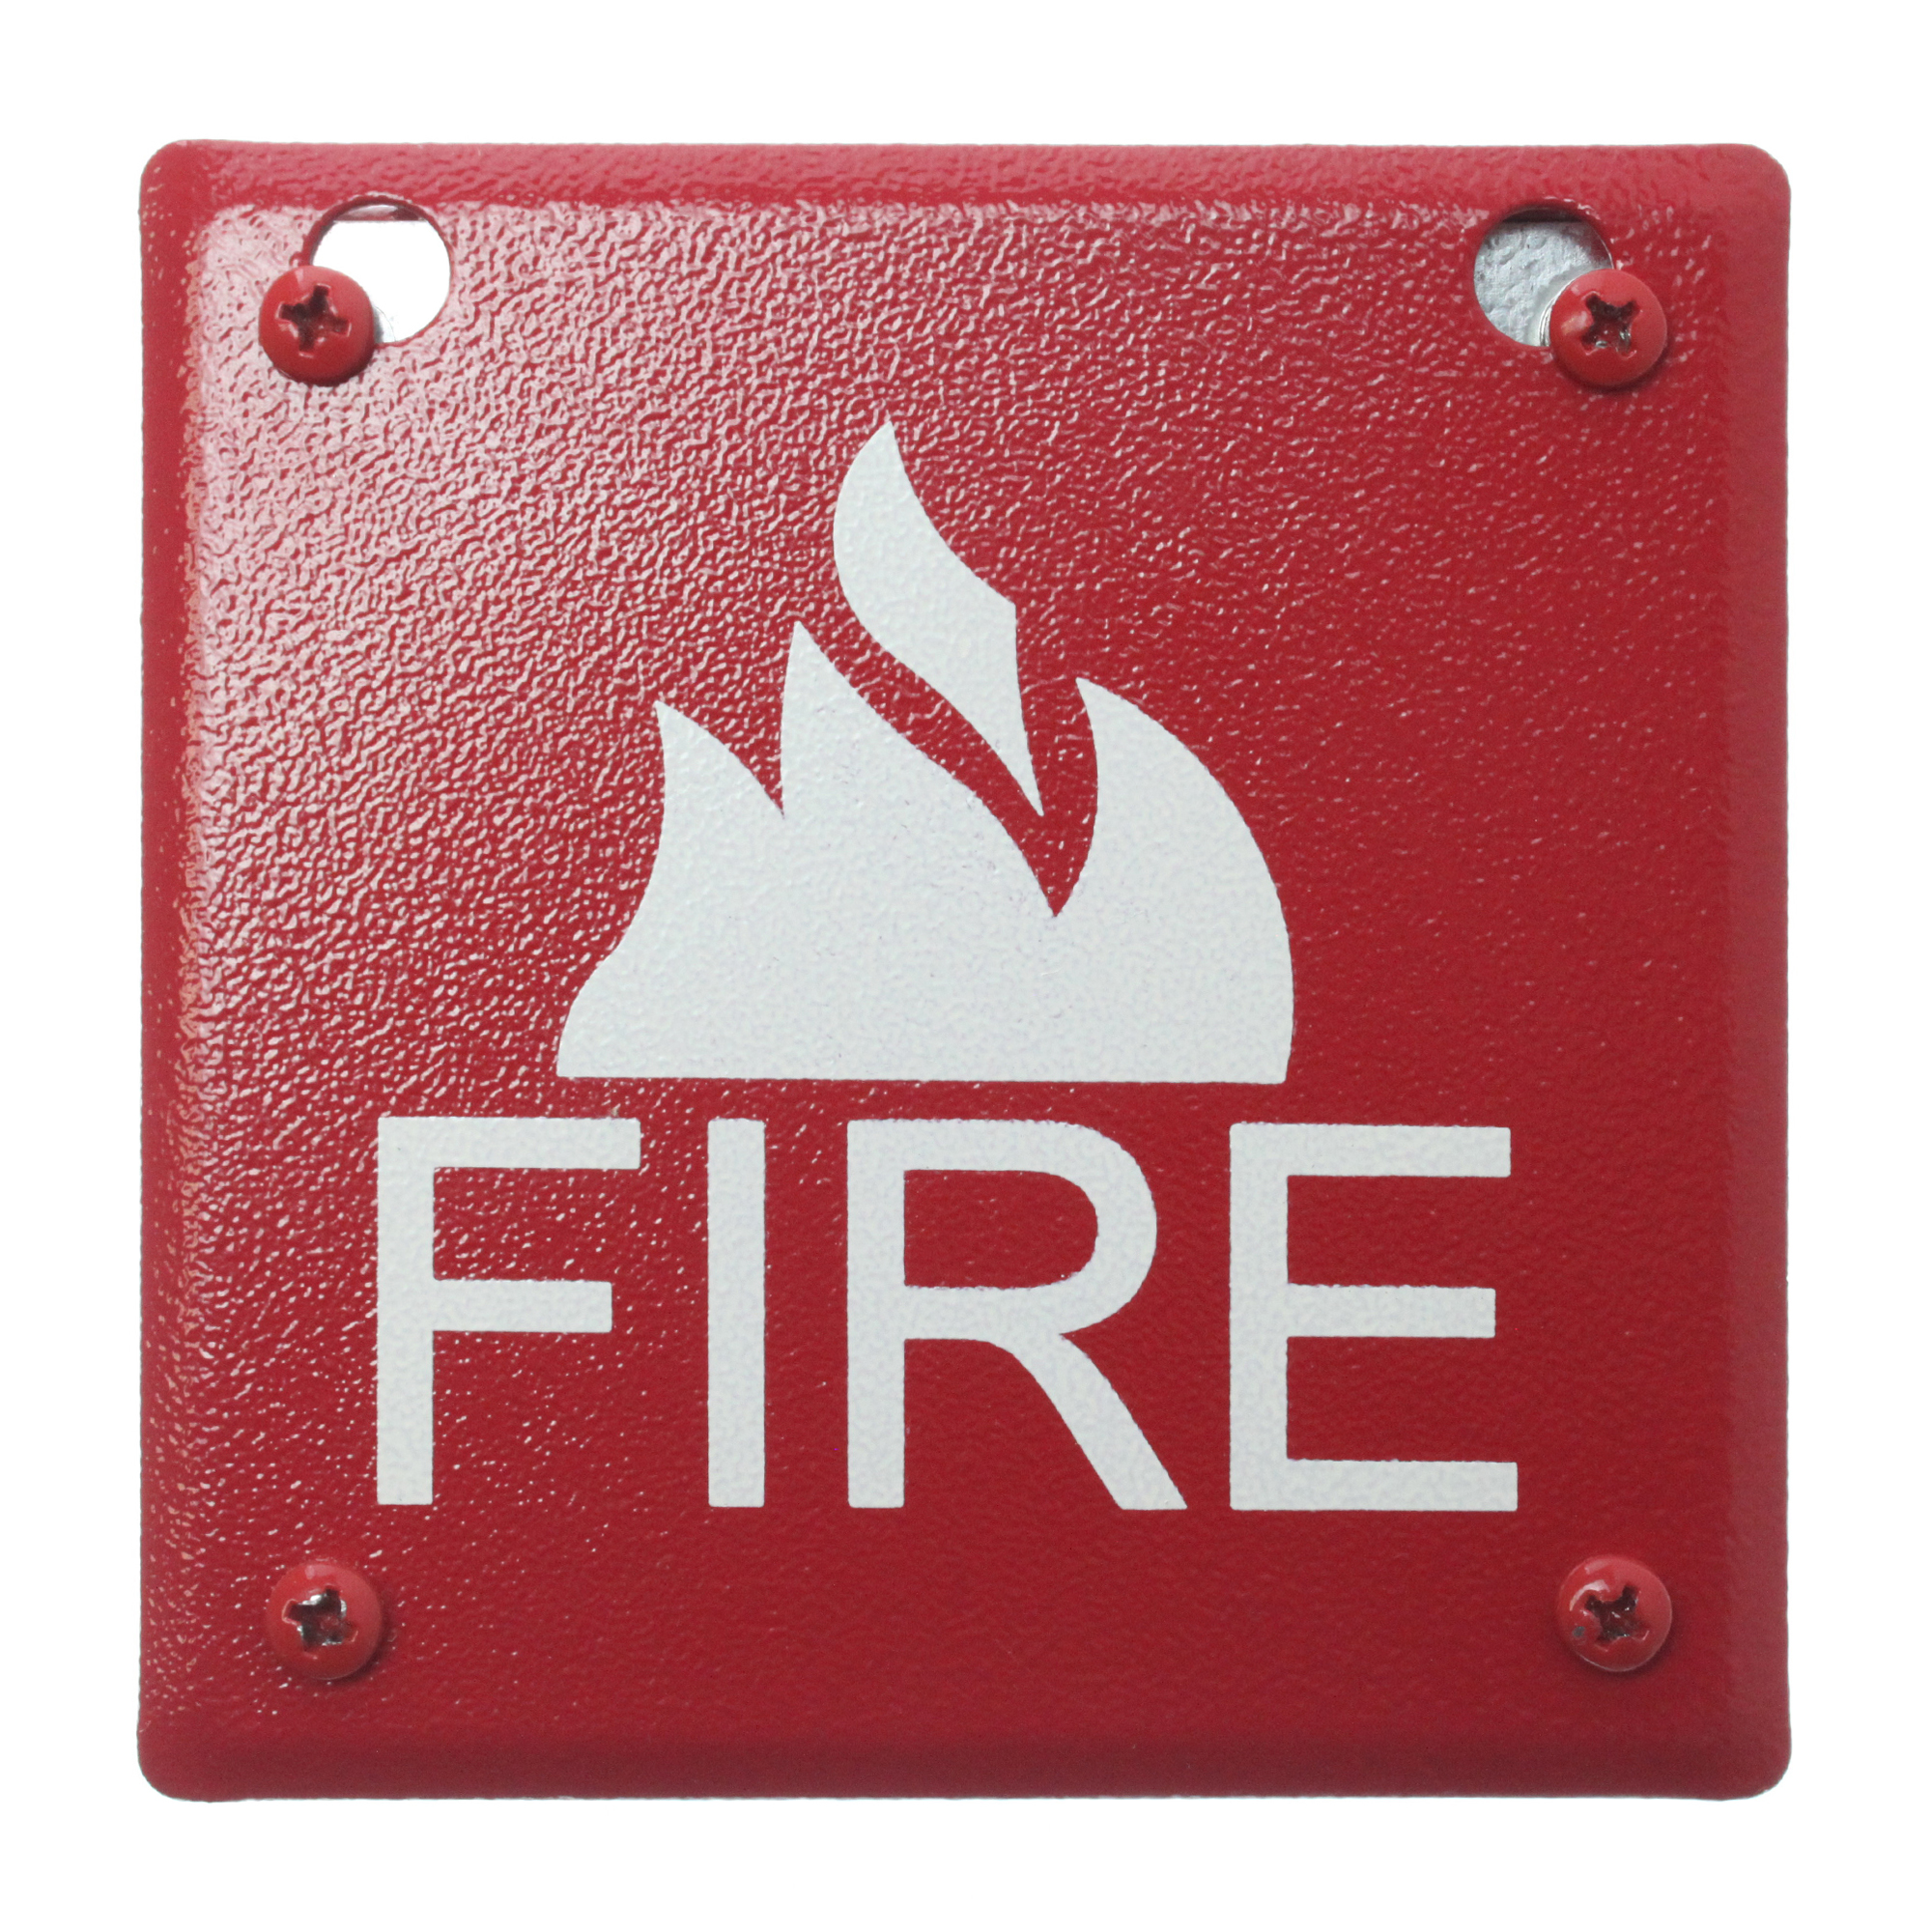 Space Age Electronics SSU00664 FB4 Fire Alarm Device Box, 4-Inch Square